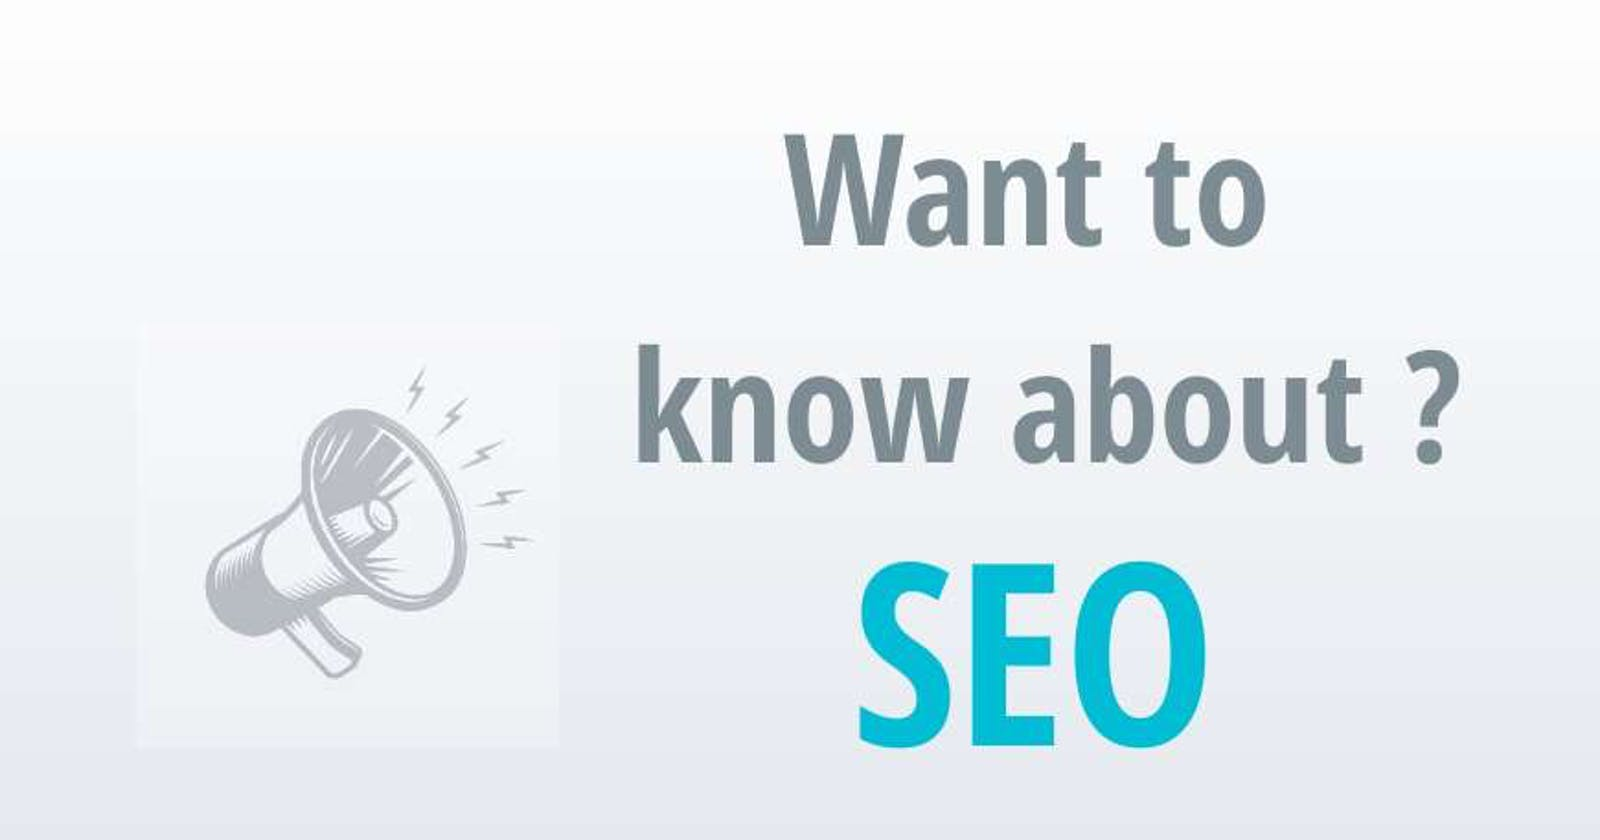 Want to know about SEO?